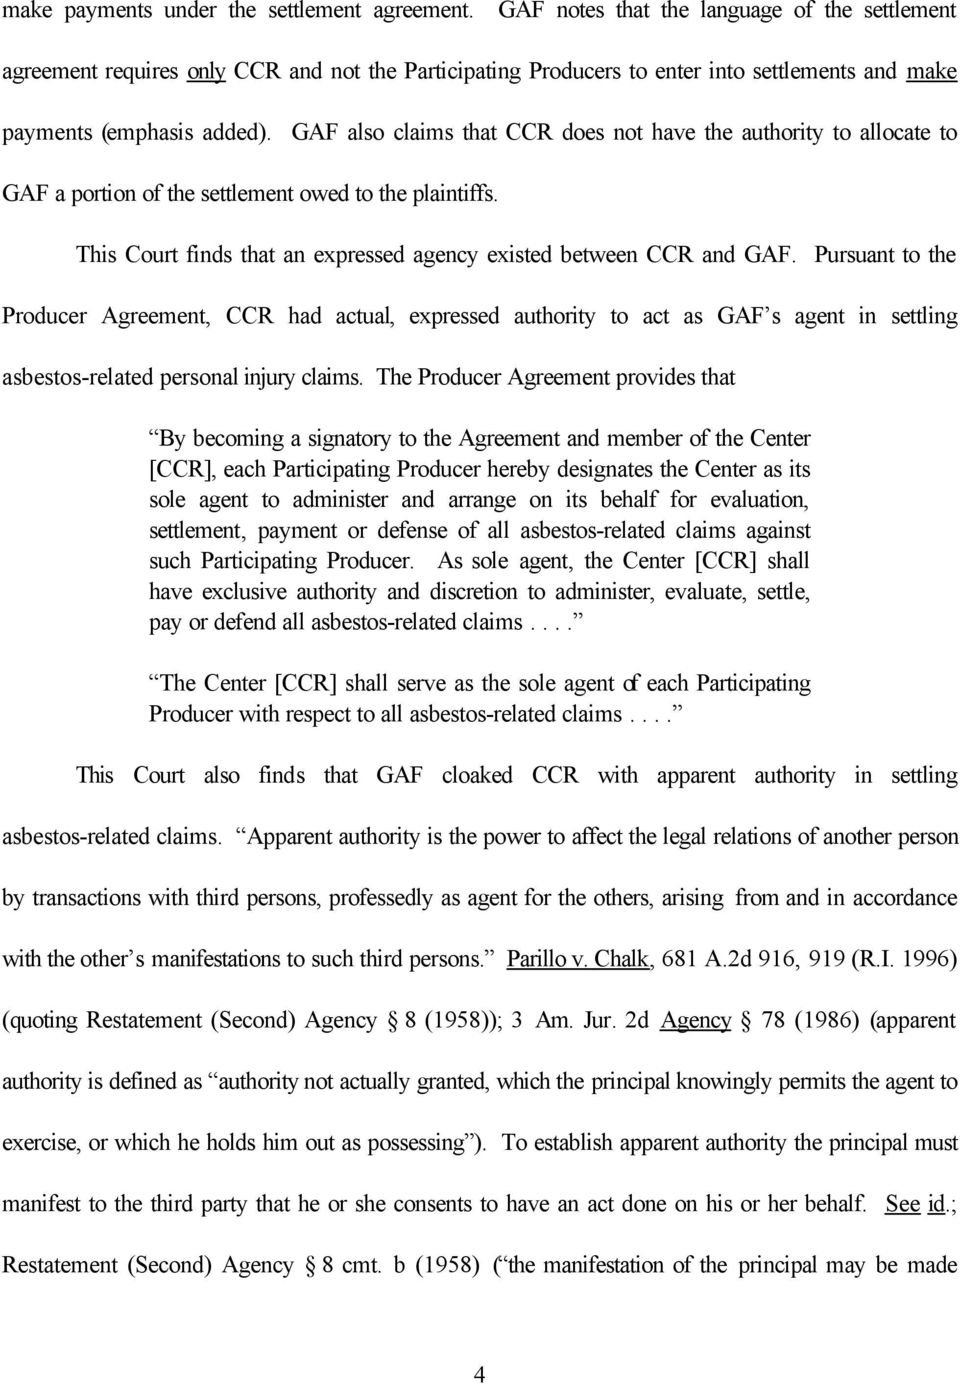 GAF also claims that CCR does not have the authority to allocate to GAF a portion of the settlement owed to the plaintiffs. This Court finds that an expressed agency existed between CCR and GAF.